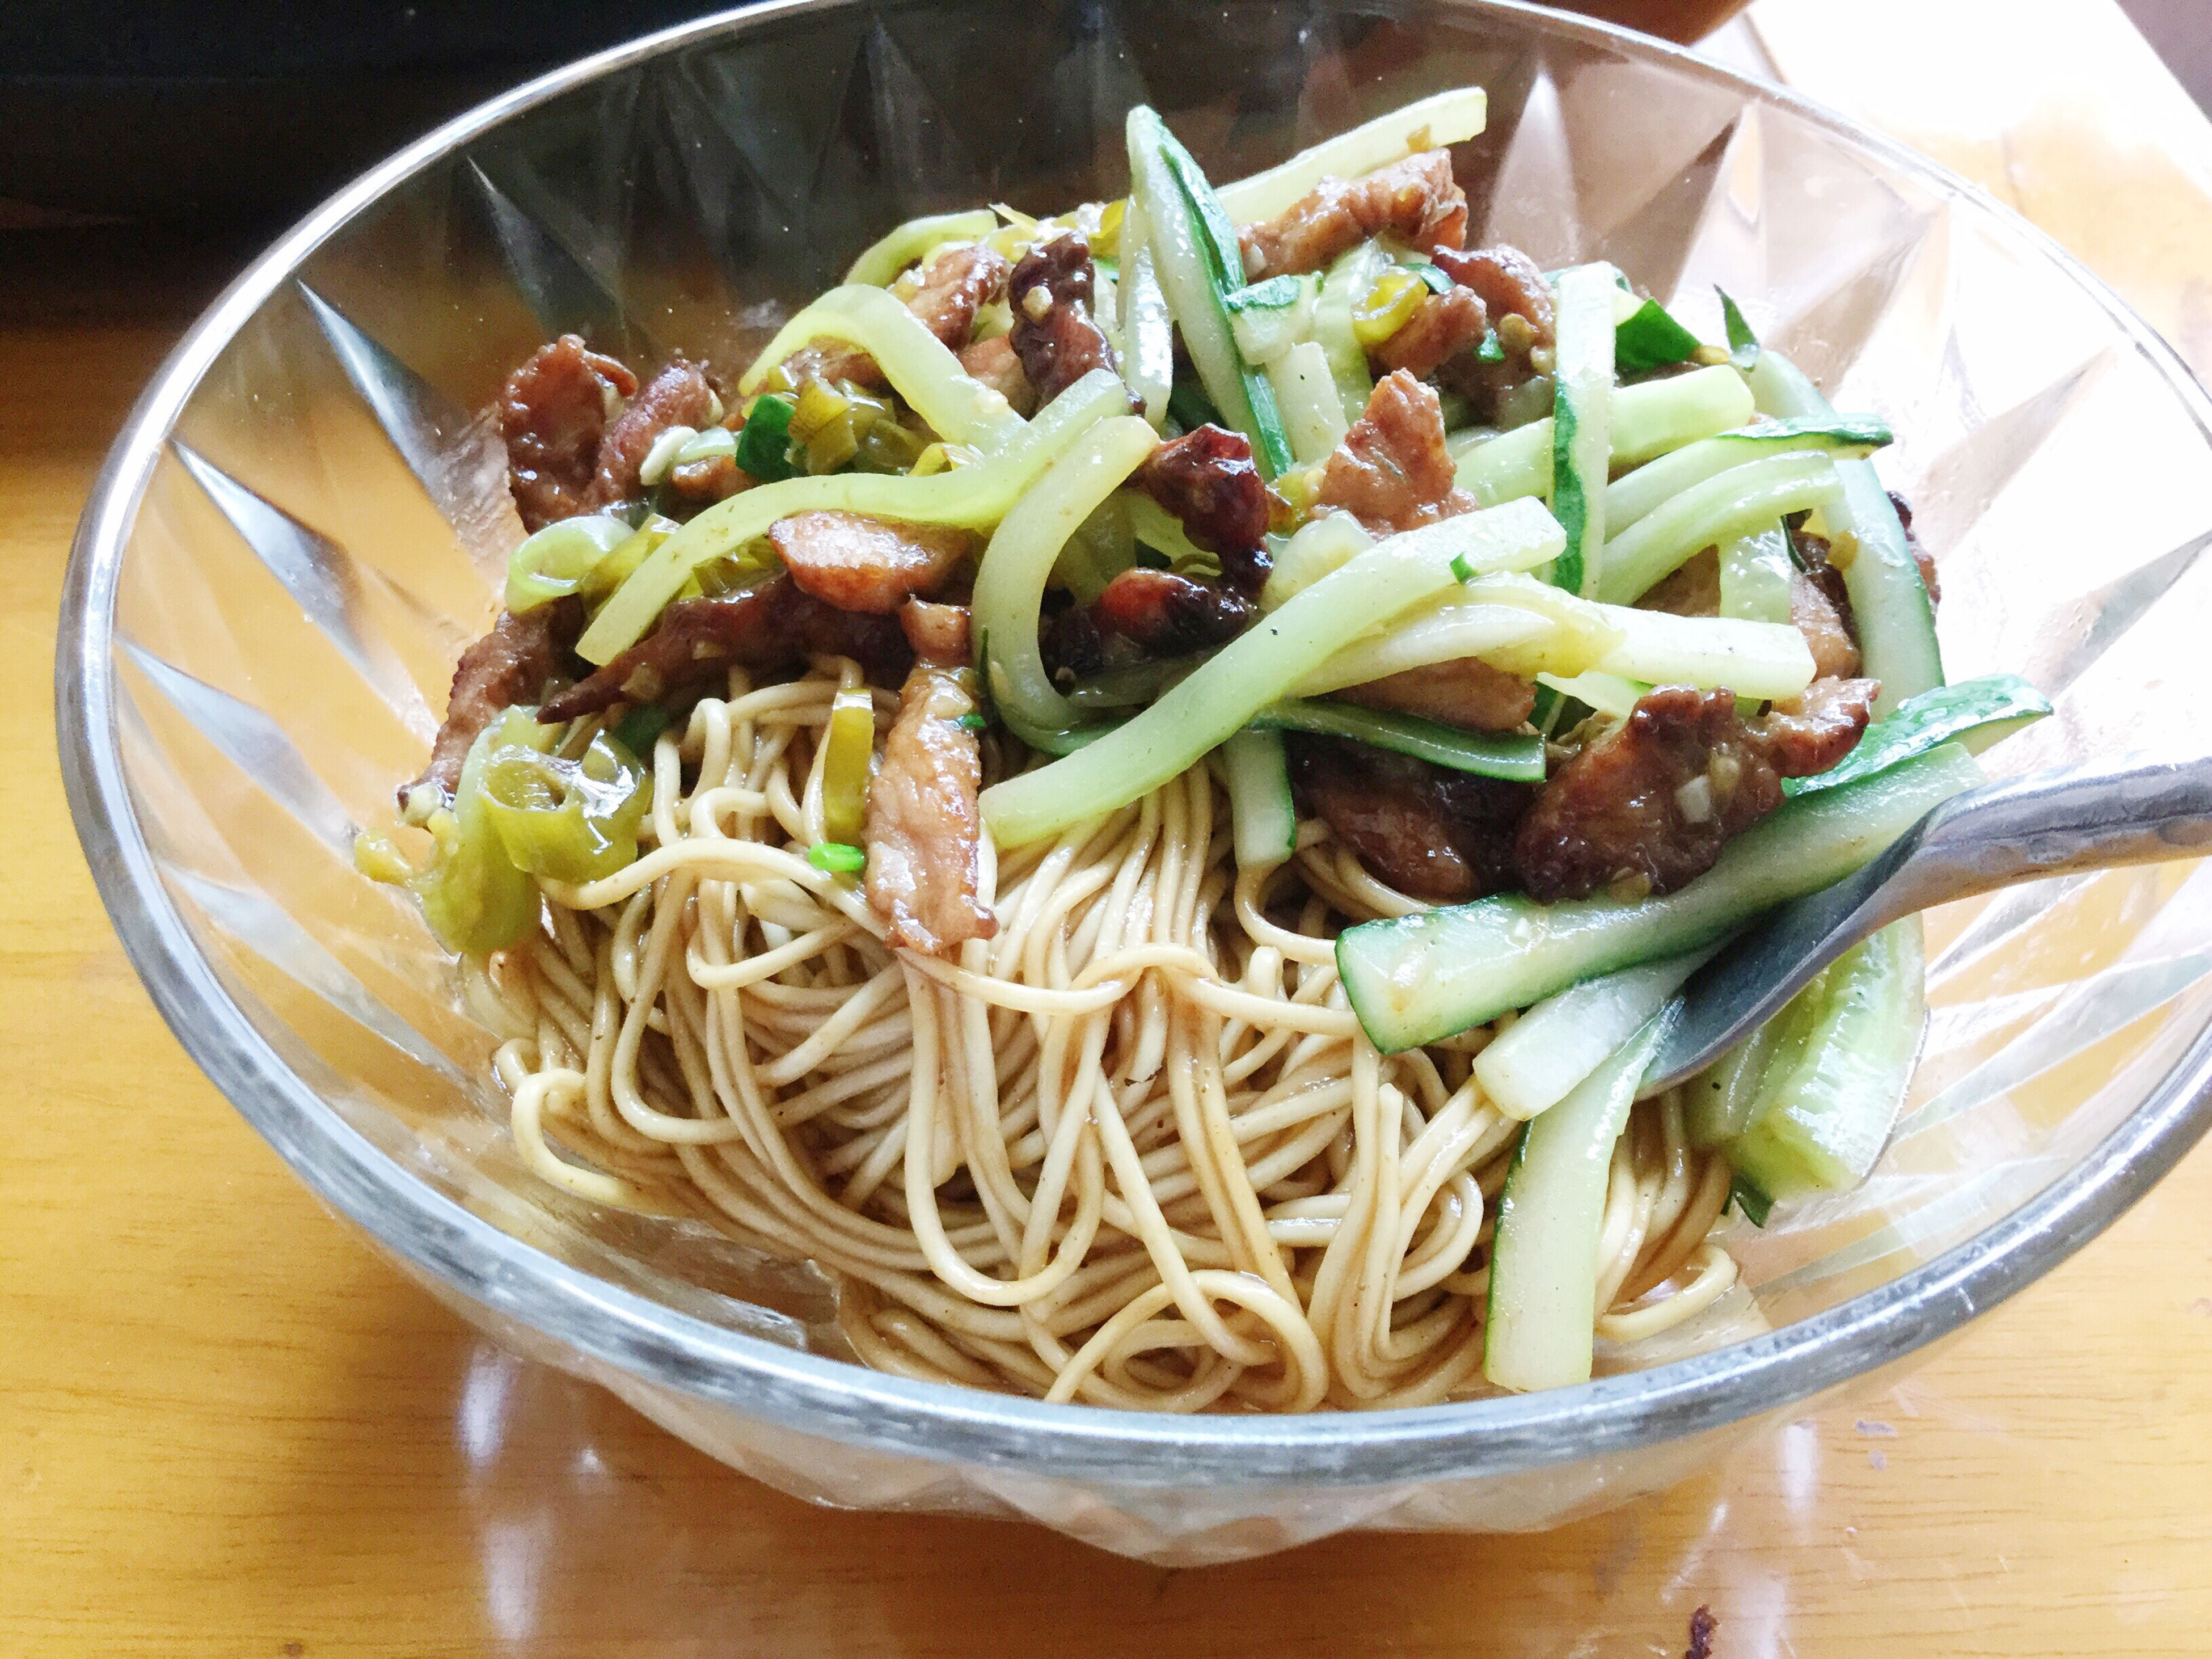 food and drink, food, indoors, ready-to-eat, freshness, close-up, bowl, table, noodles, high angle view, healthy eating, indulgence, serving size, vegetable, temptation, soup, noodle, culture, spaghetti, meal, dinner, no people, garnished, garnish